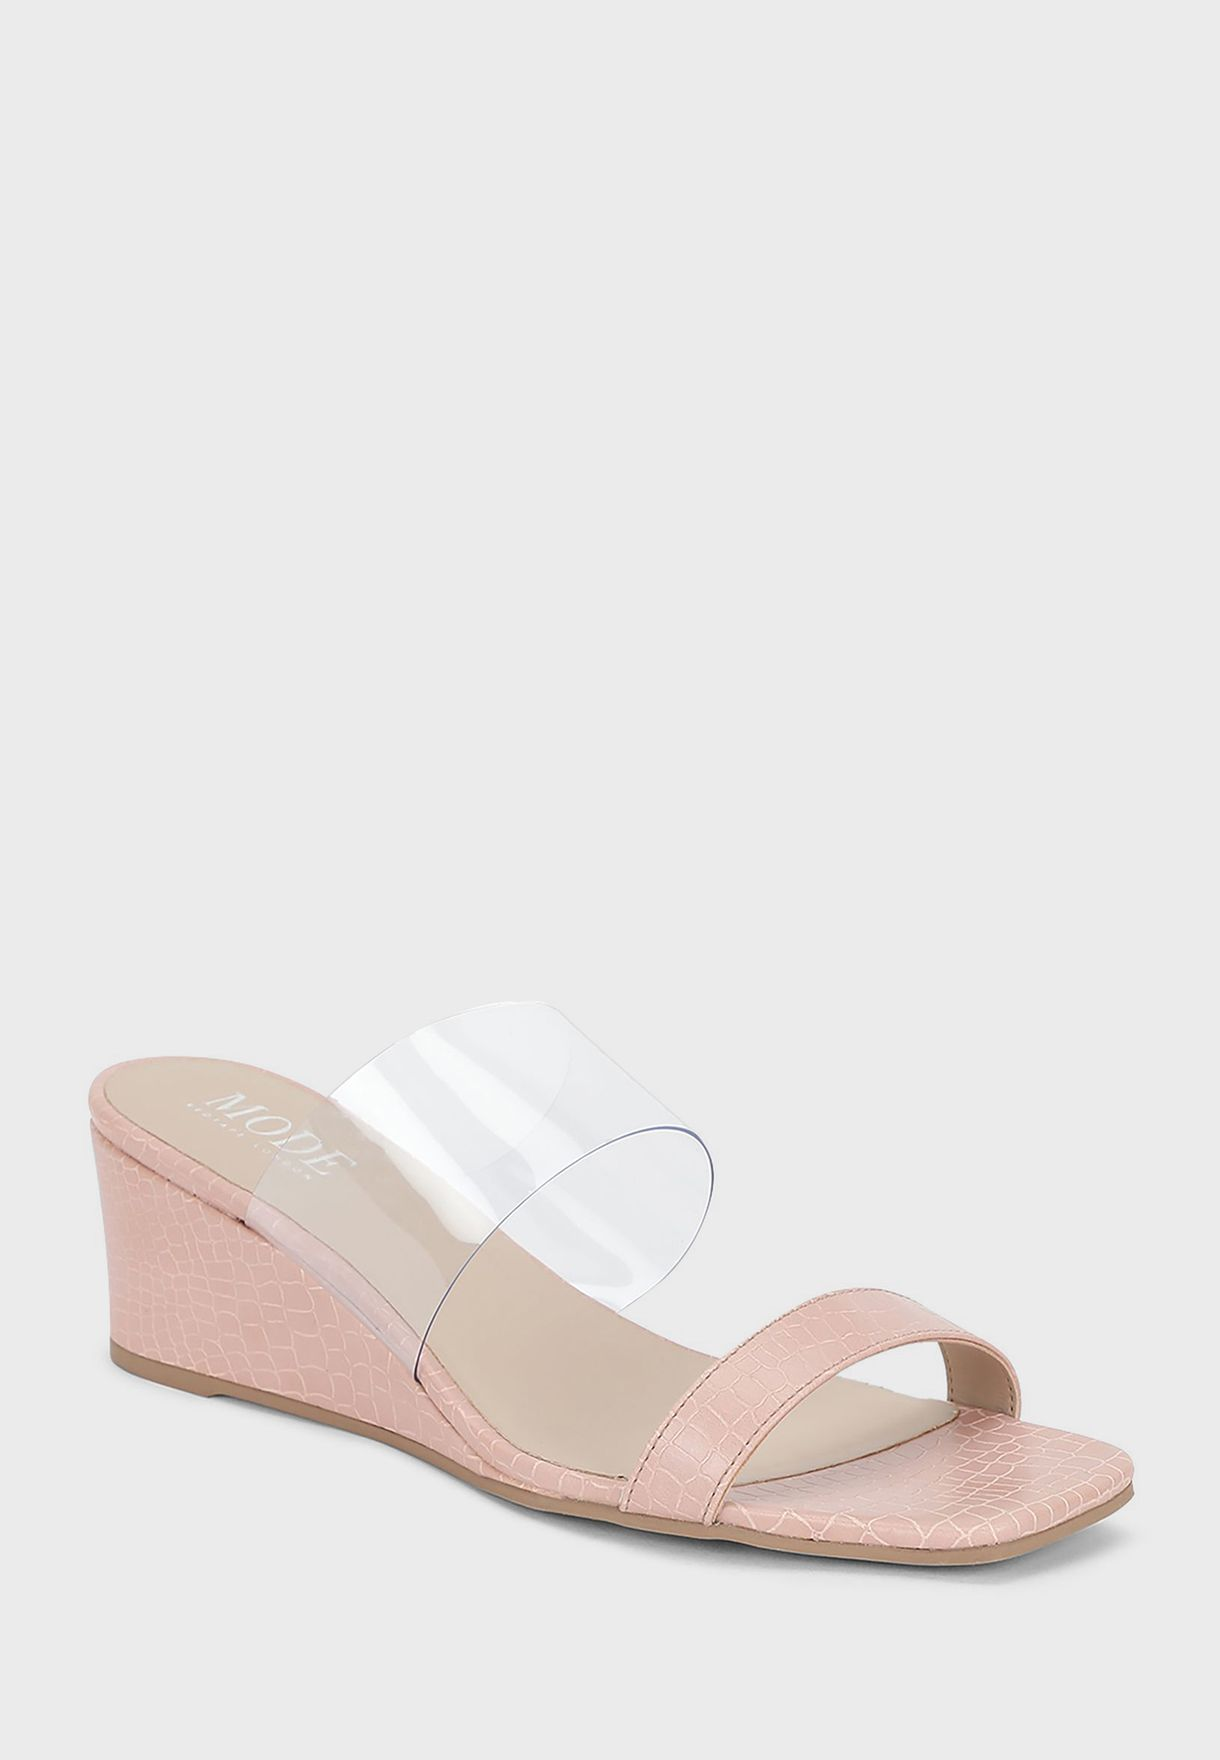 Double Strap Wedge Sandals